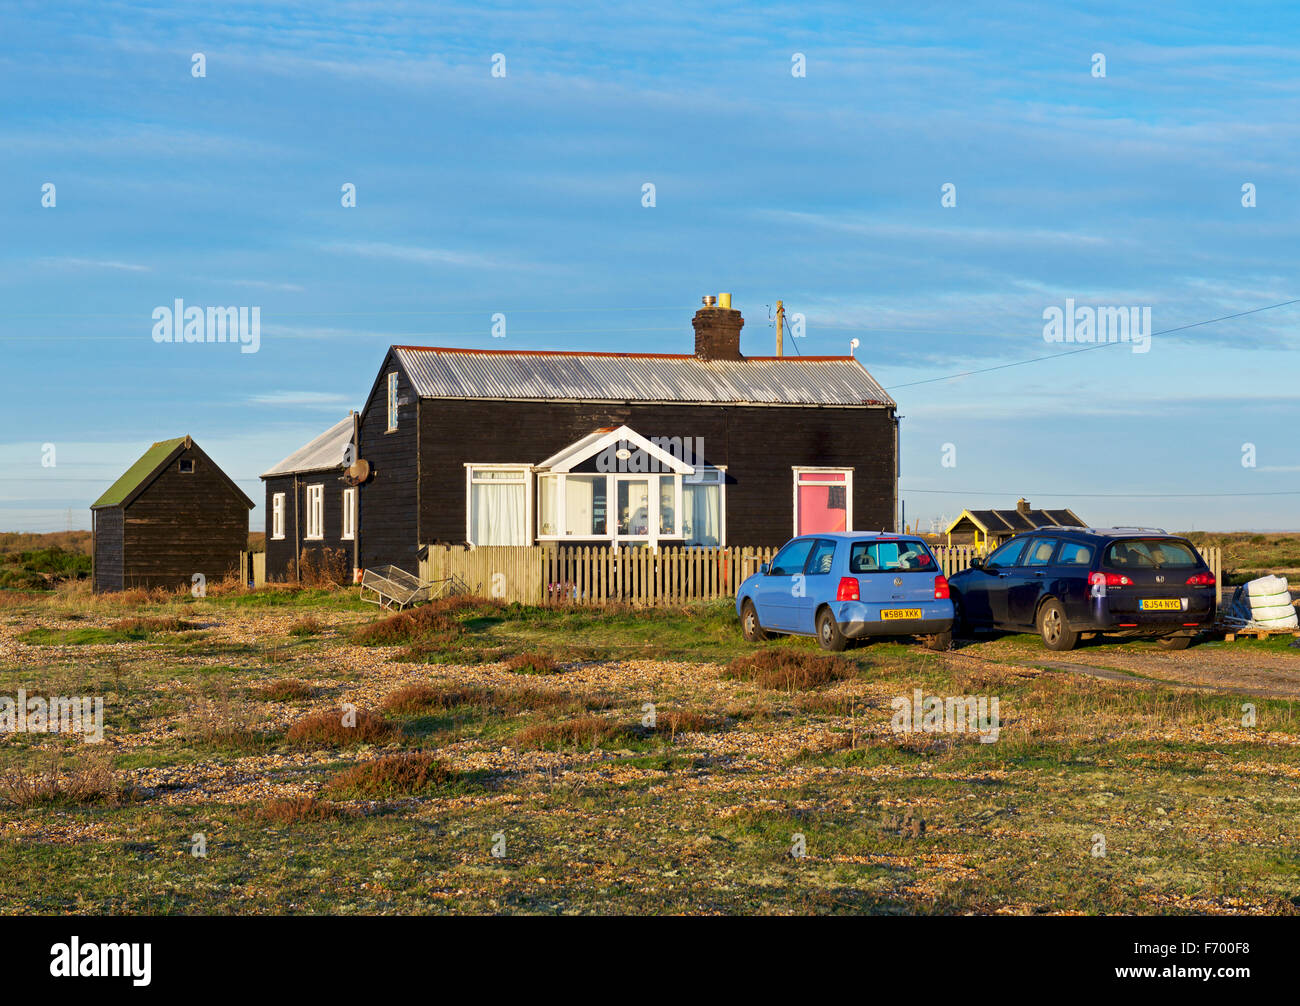 Wooden chalet at Dungeness, Kent, England UK - Stock Image